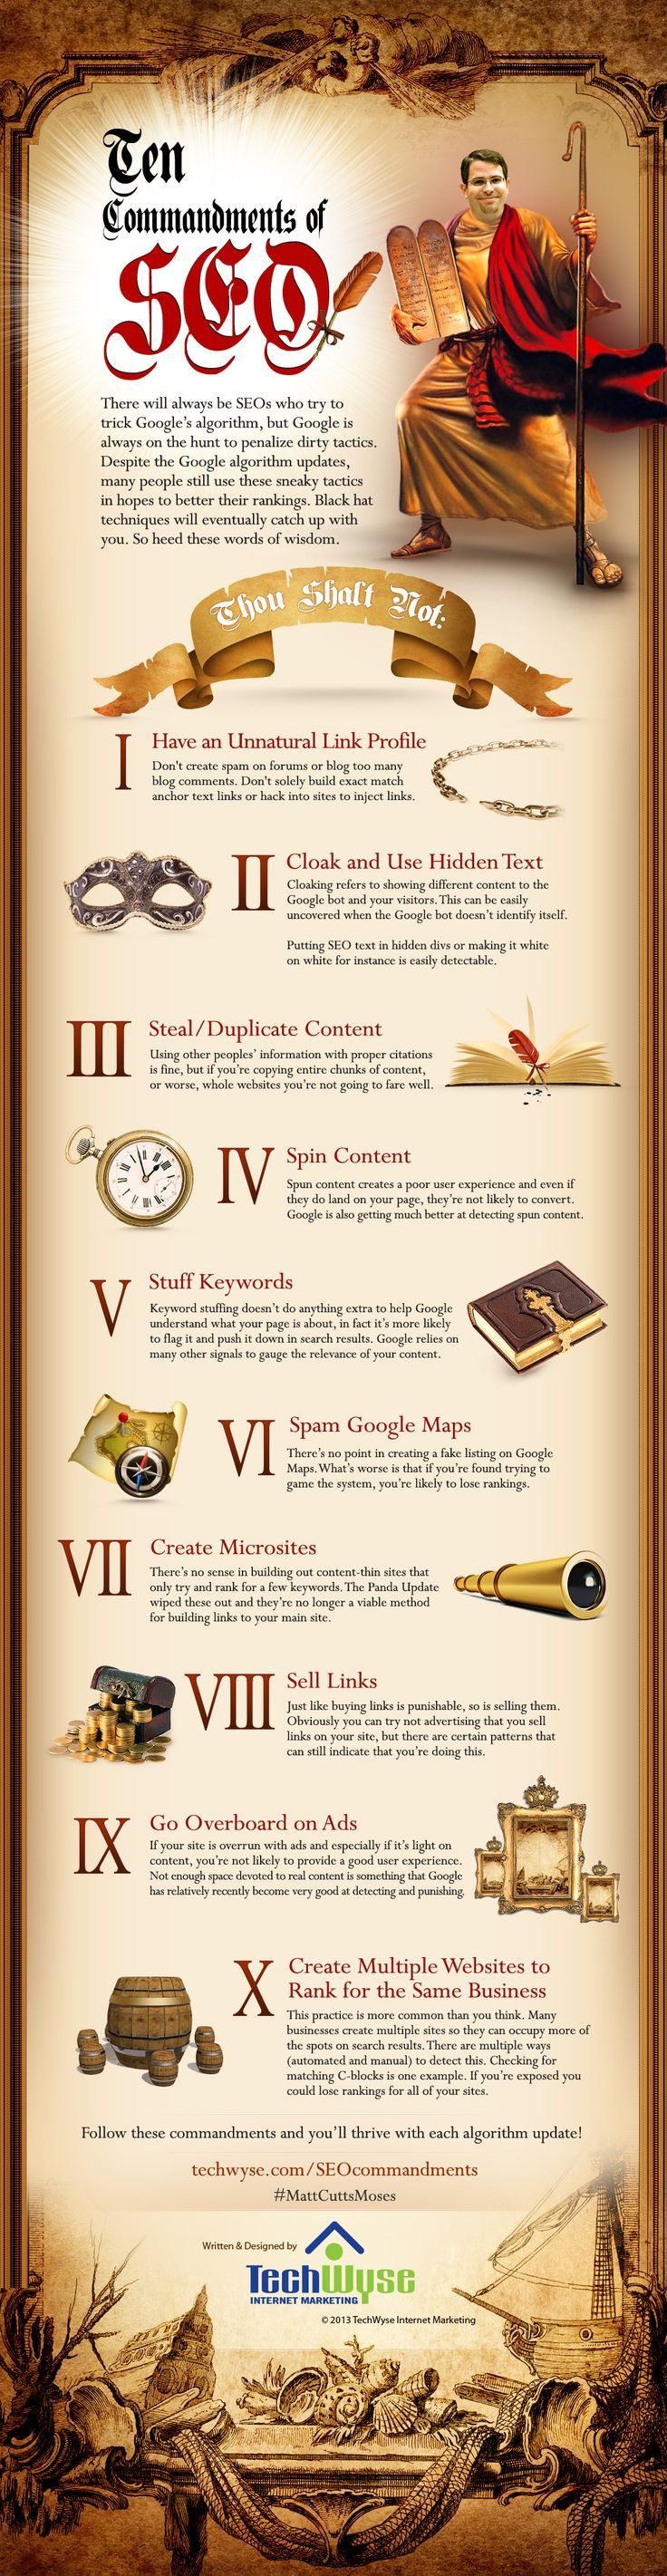 305 Best Step By 10 Images On Pinterest Creative Ideas You39ll Need To Install A Switch Over Separate The Outlets Commandments Of Seo For Marketing Via Act Software